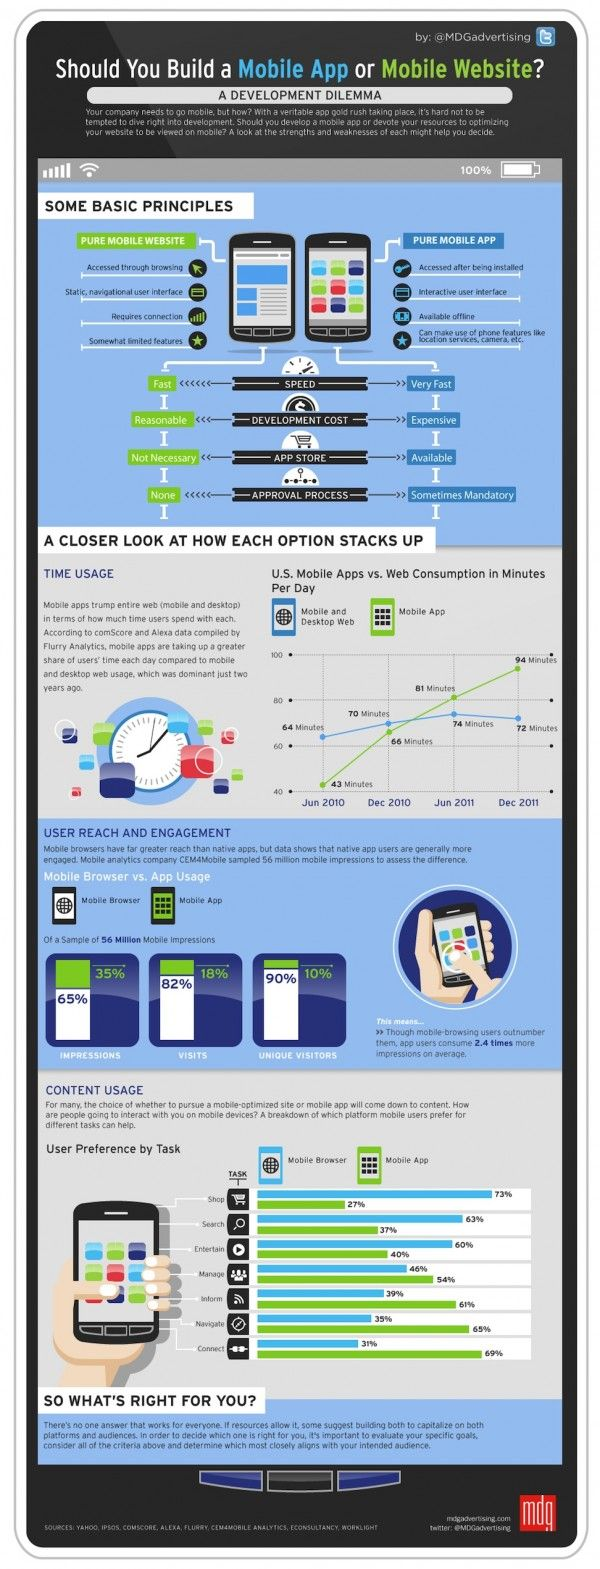 Mobile App vs Mobile Website.... Most small businesses should start with mobile-site... Contact me for free 30 day trial.